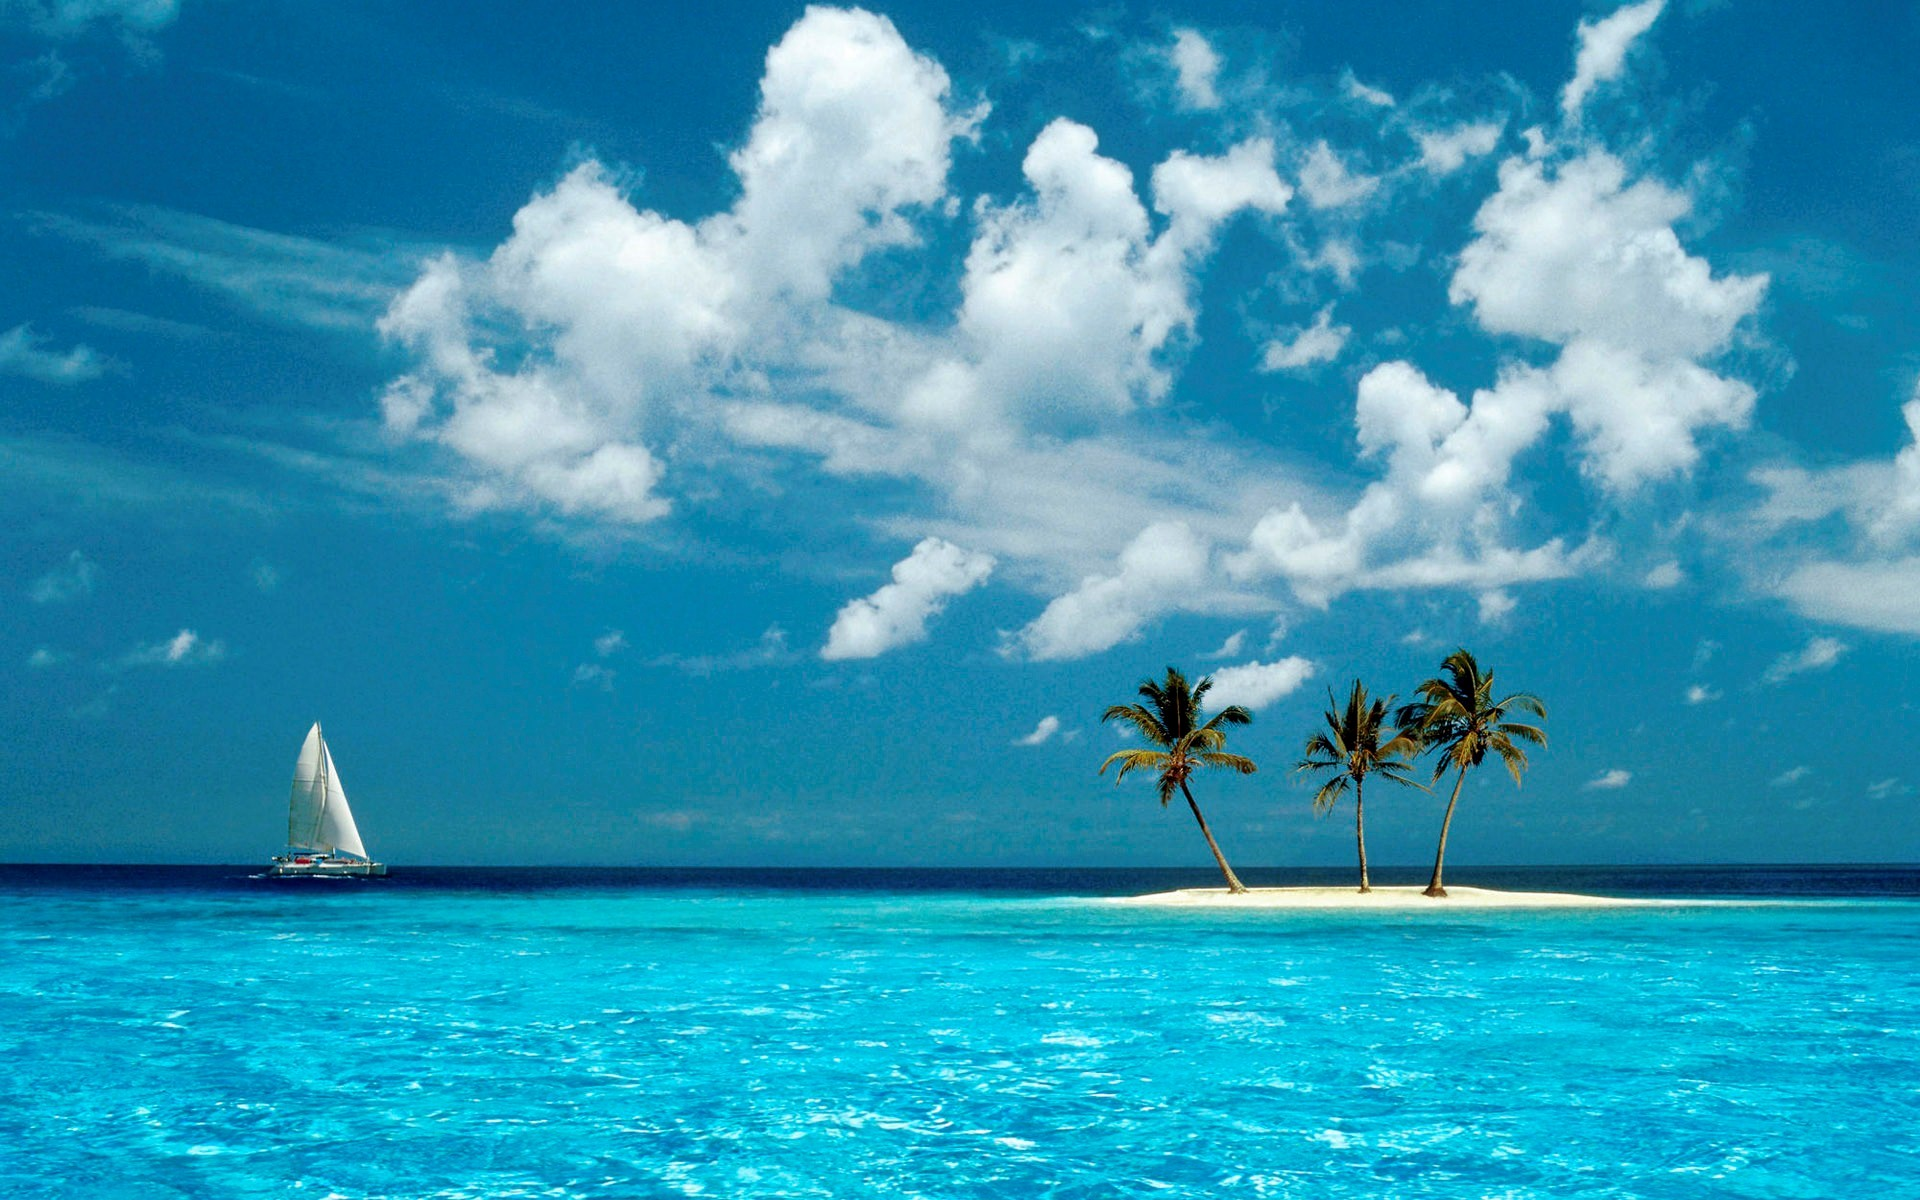 Island Wallpapers | Free Download HD Beautiful Amazing Awesome Images